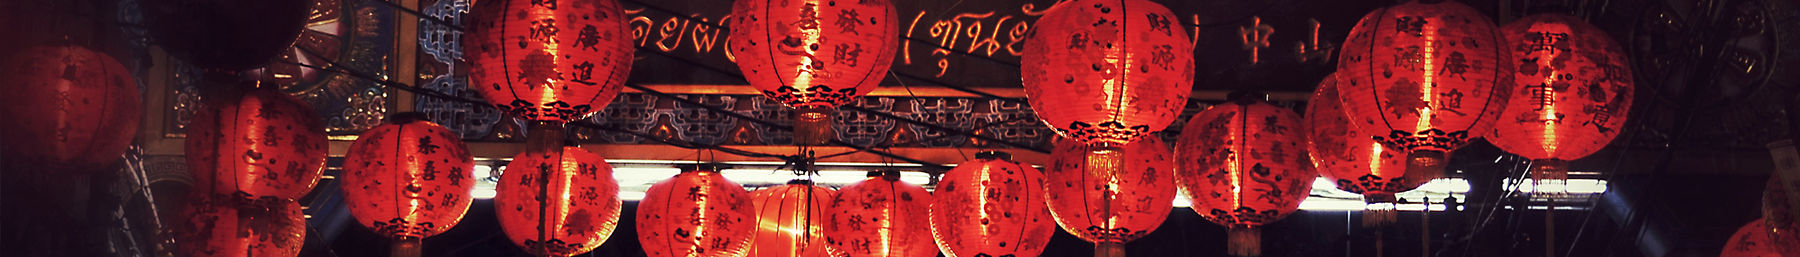 Chinese lanterns in Yaowarat